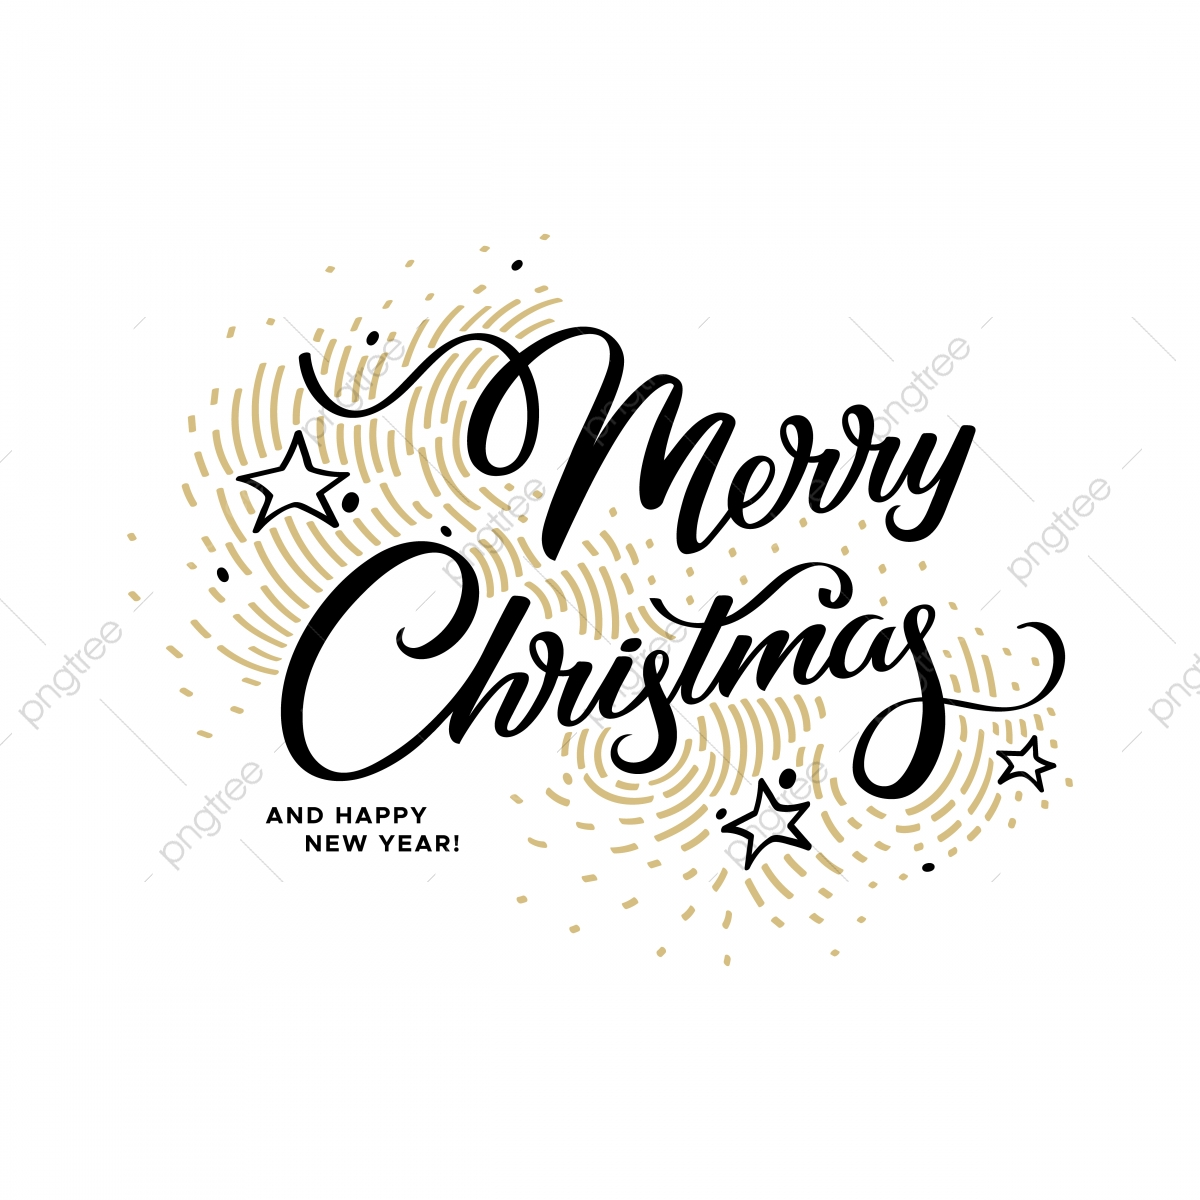 Merry Christmas Lettering On A White Background With Golden